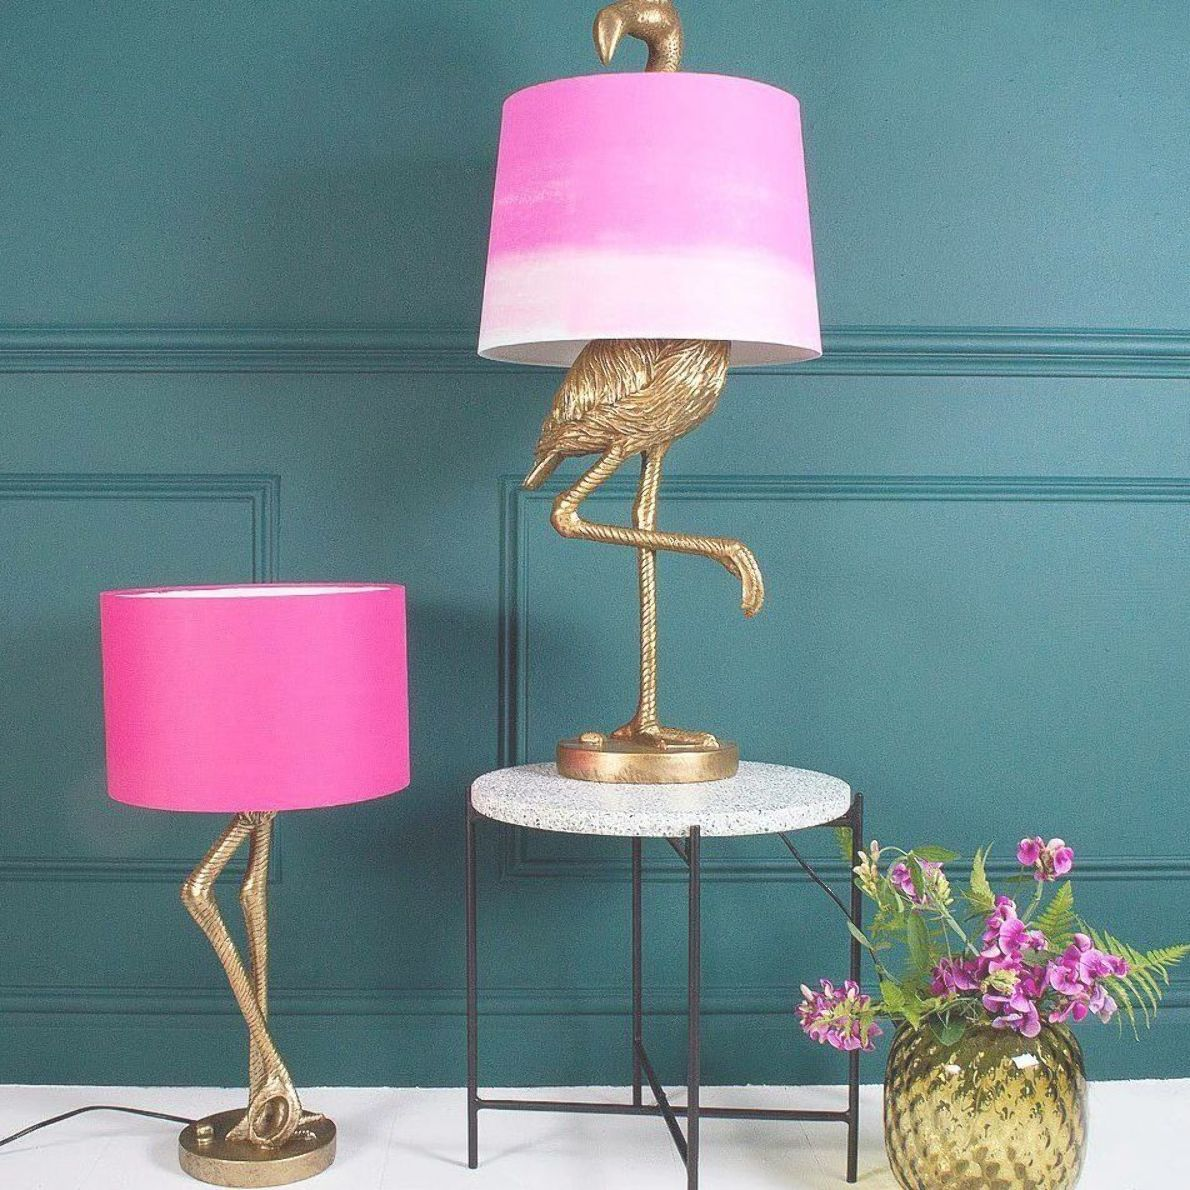 Add A Touch Of Wild Whimsy To Your Home Decor With This Quirky Animal Lamp Trend From Giraffes To Llamas To Unicorns Lampentisch Lampen Wohnzimmer Dekor